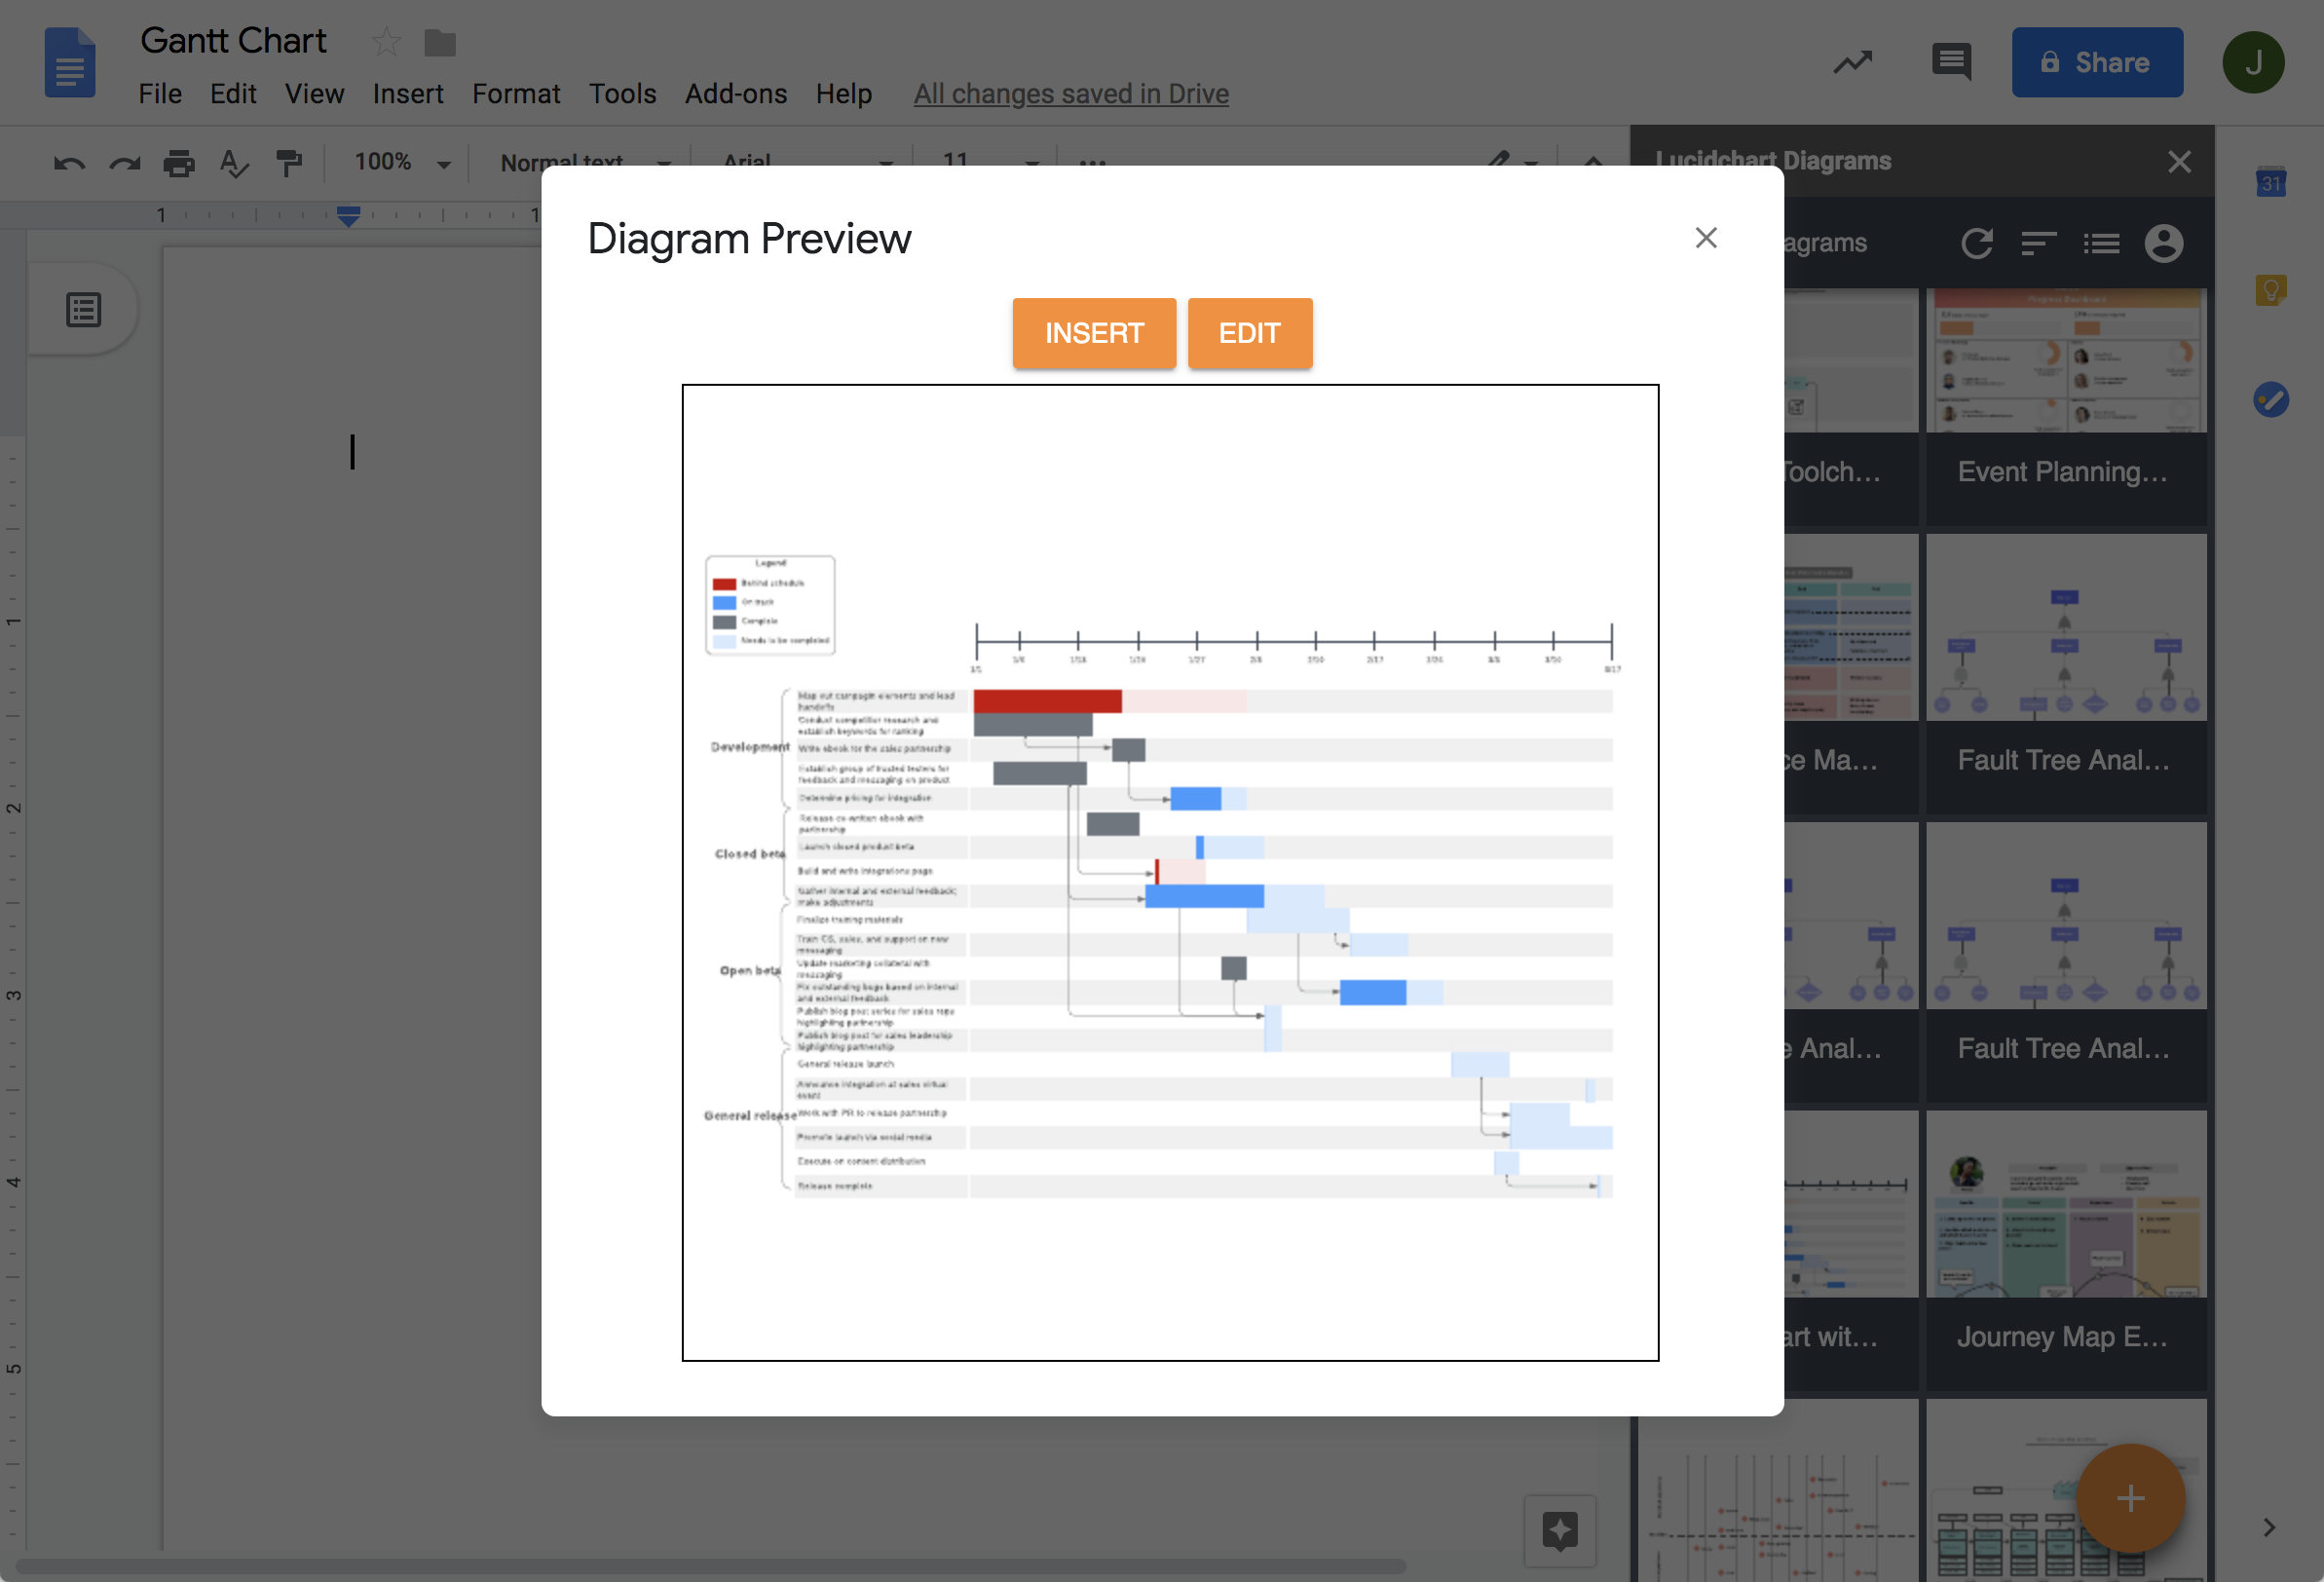 Integraciones de G Suite con la alternativa a Visio